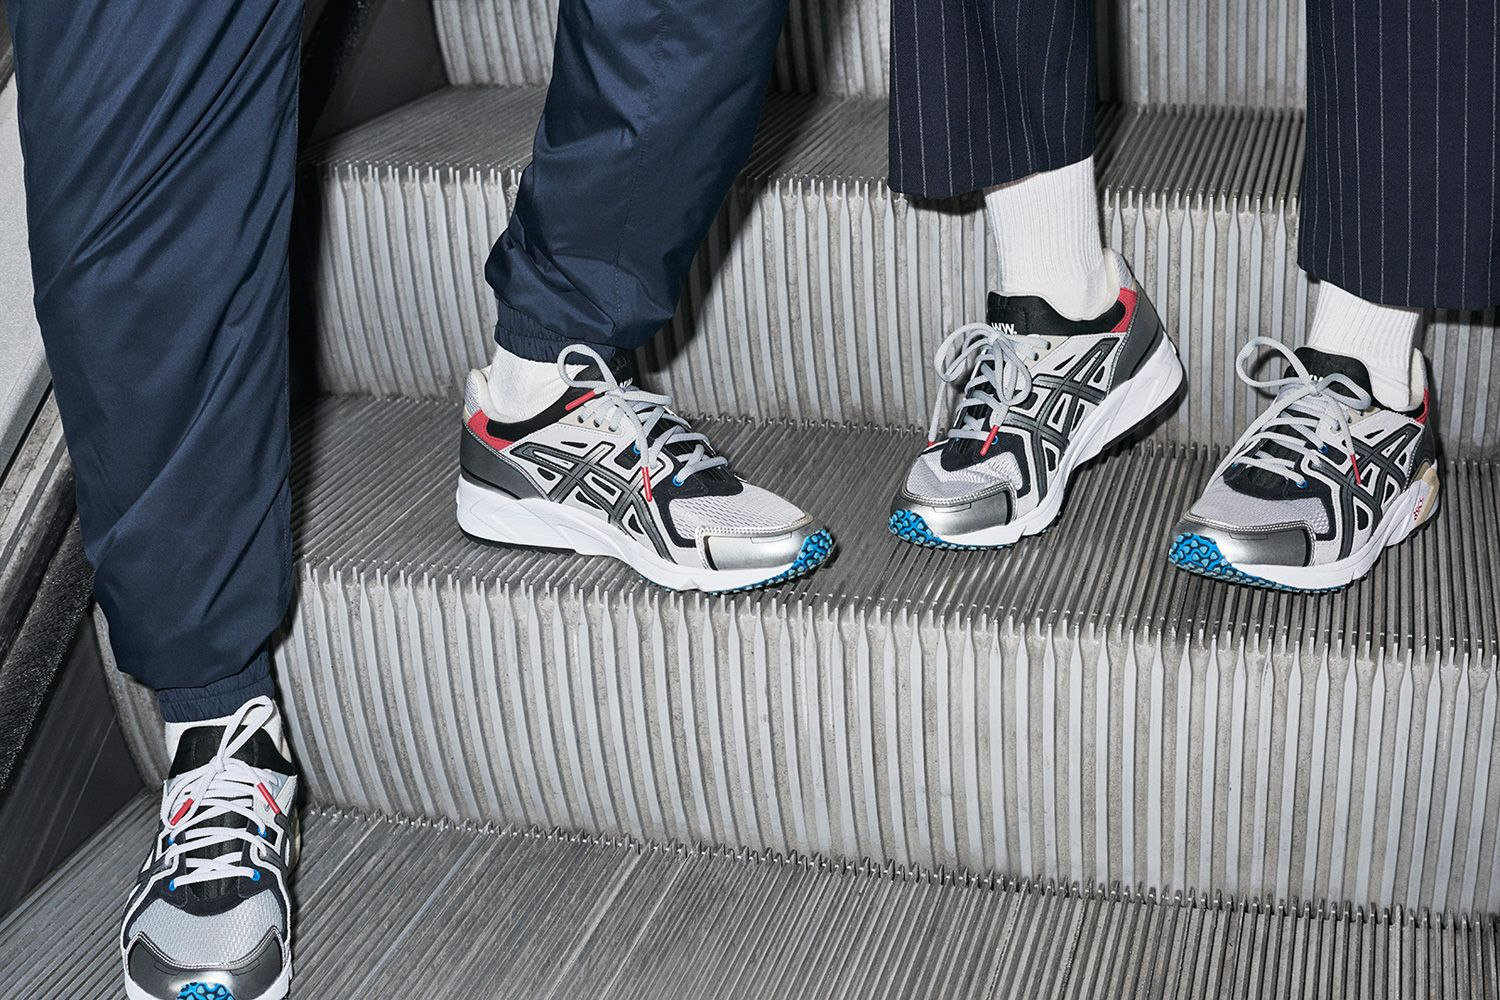 Wood Wood Takes on the Dad Shoe With the ASICS GEL DS